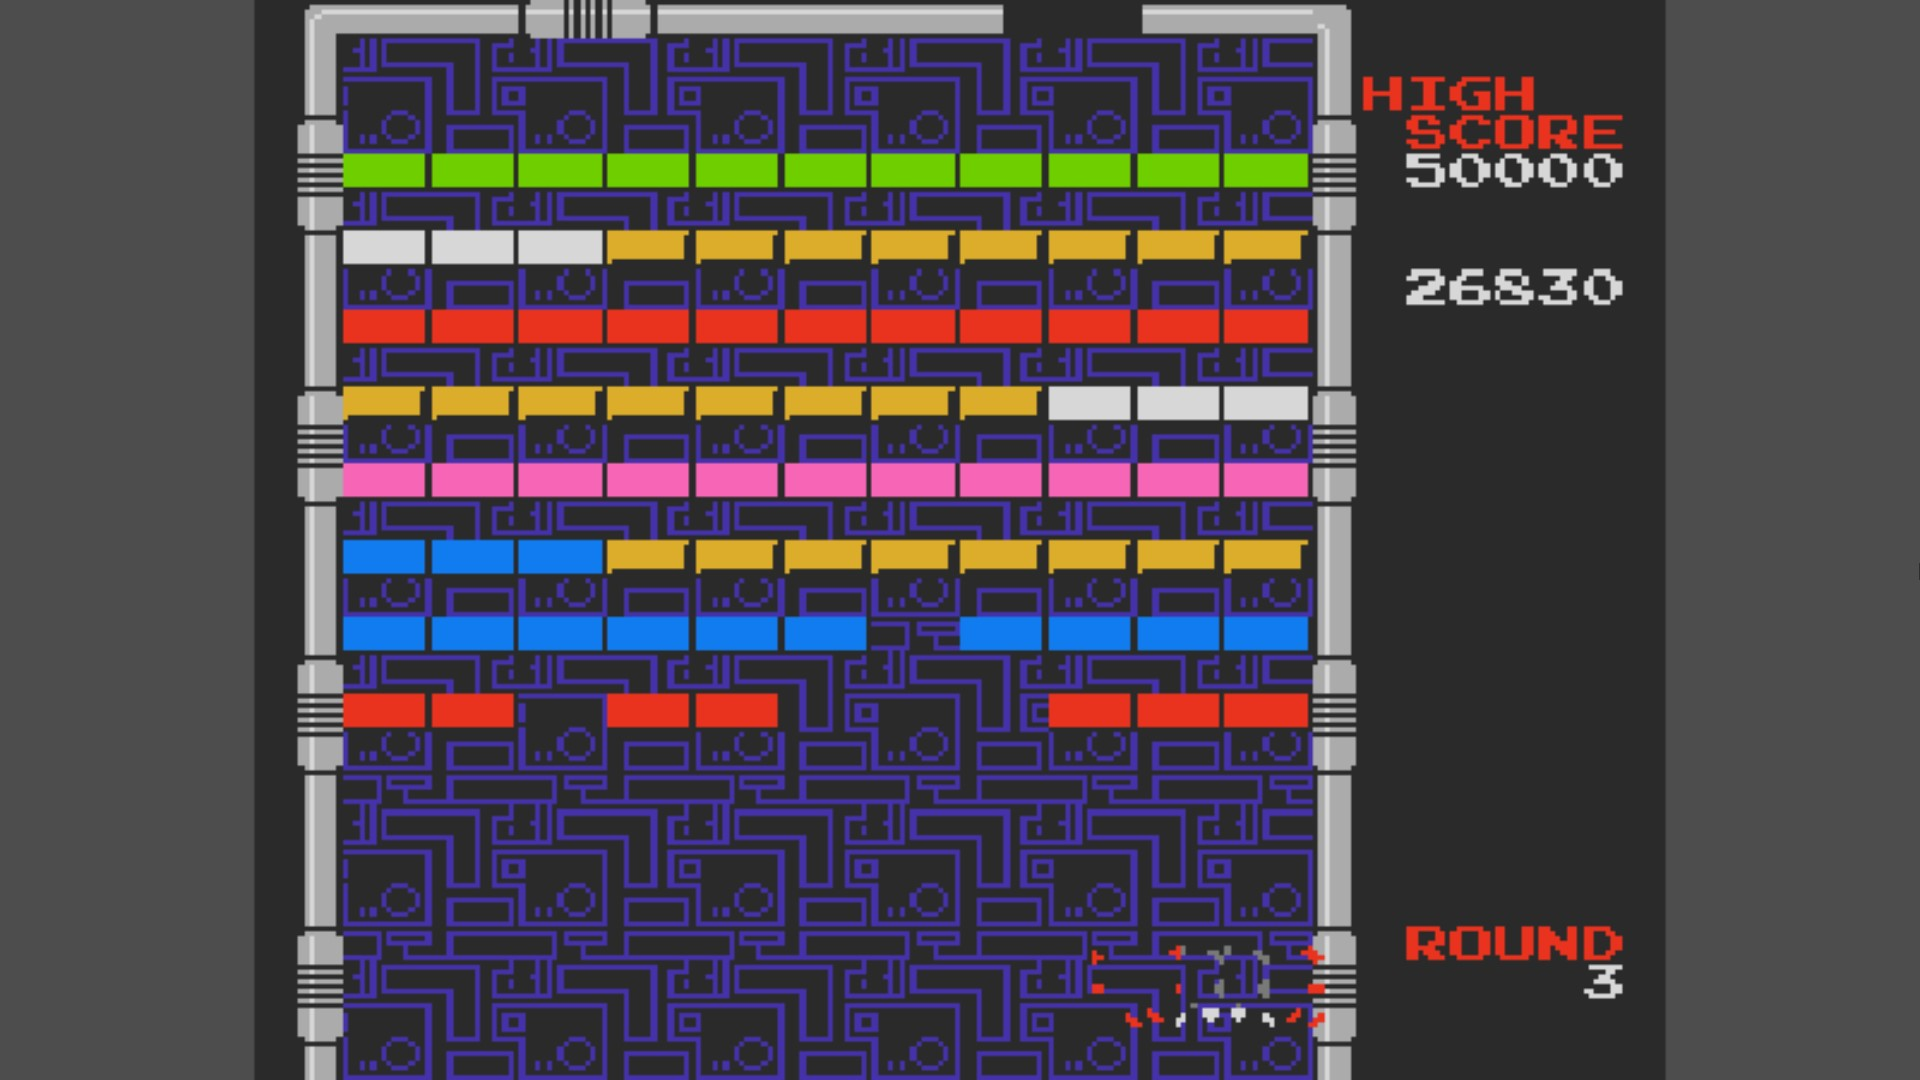 Arkanoid 26,830 points